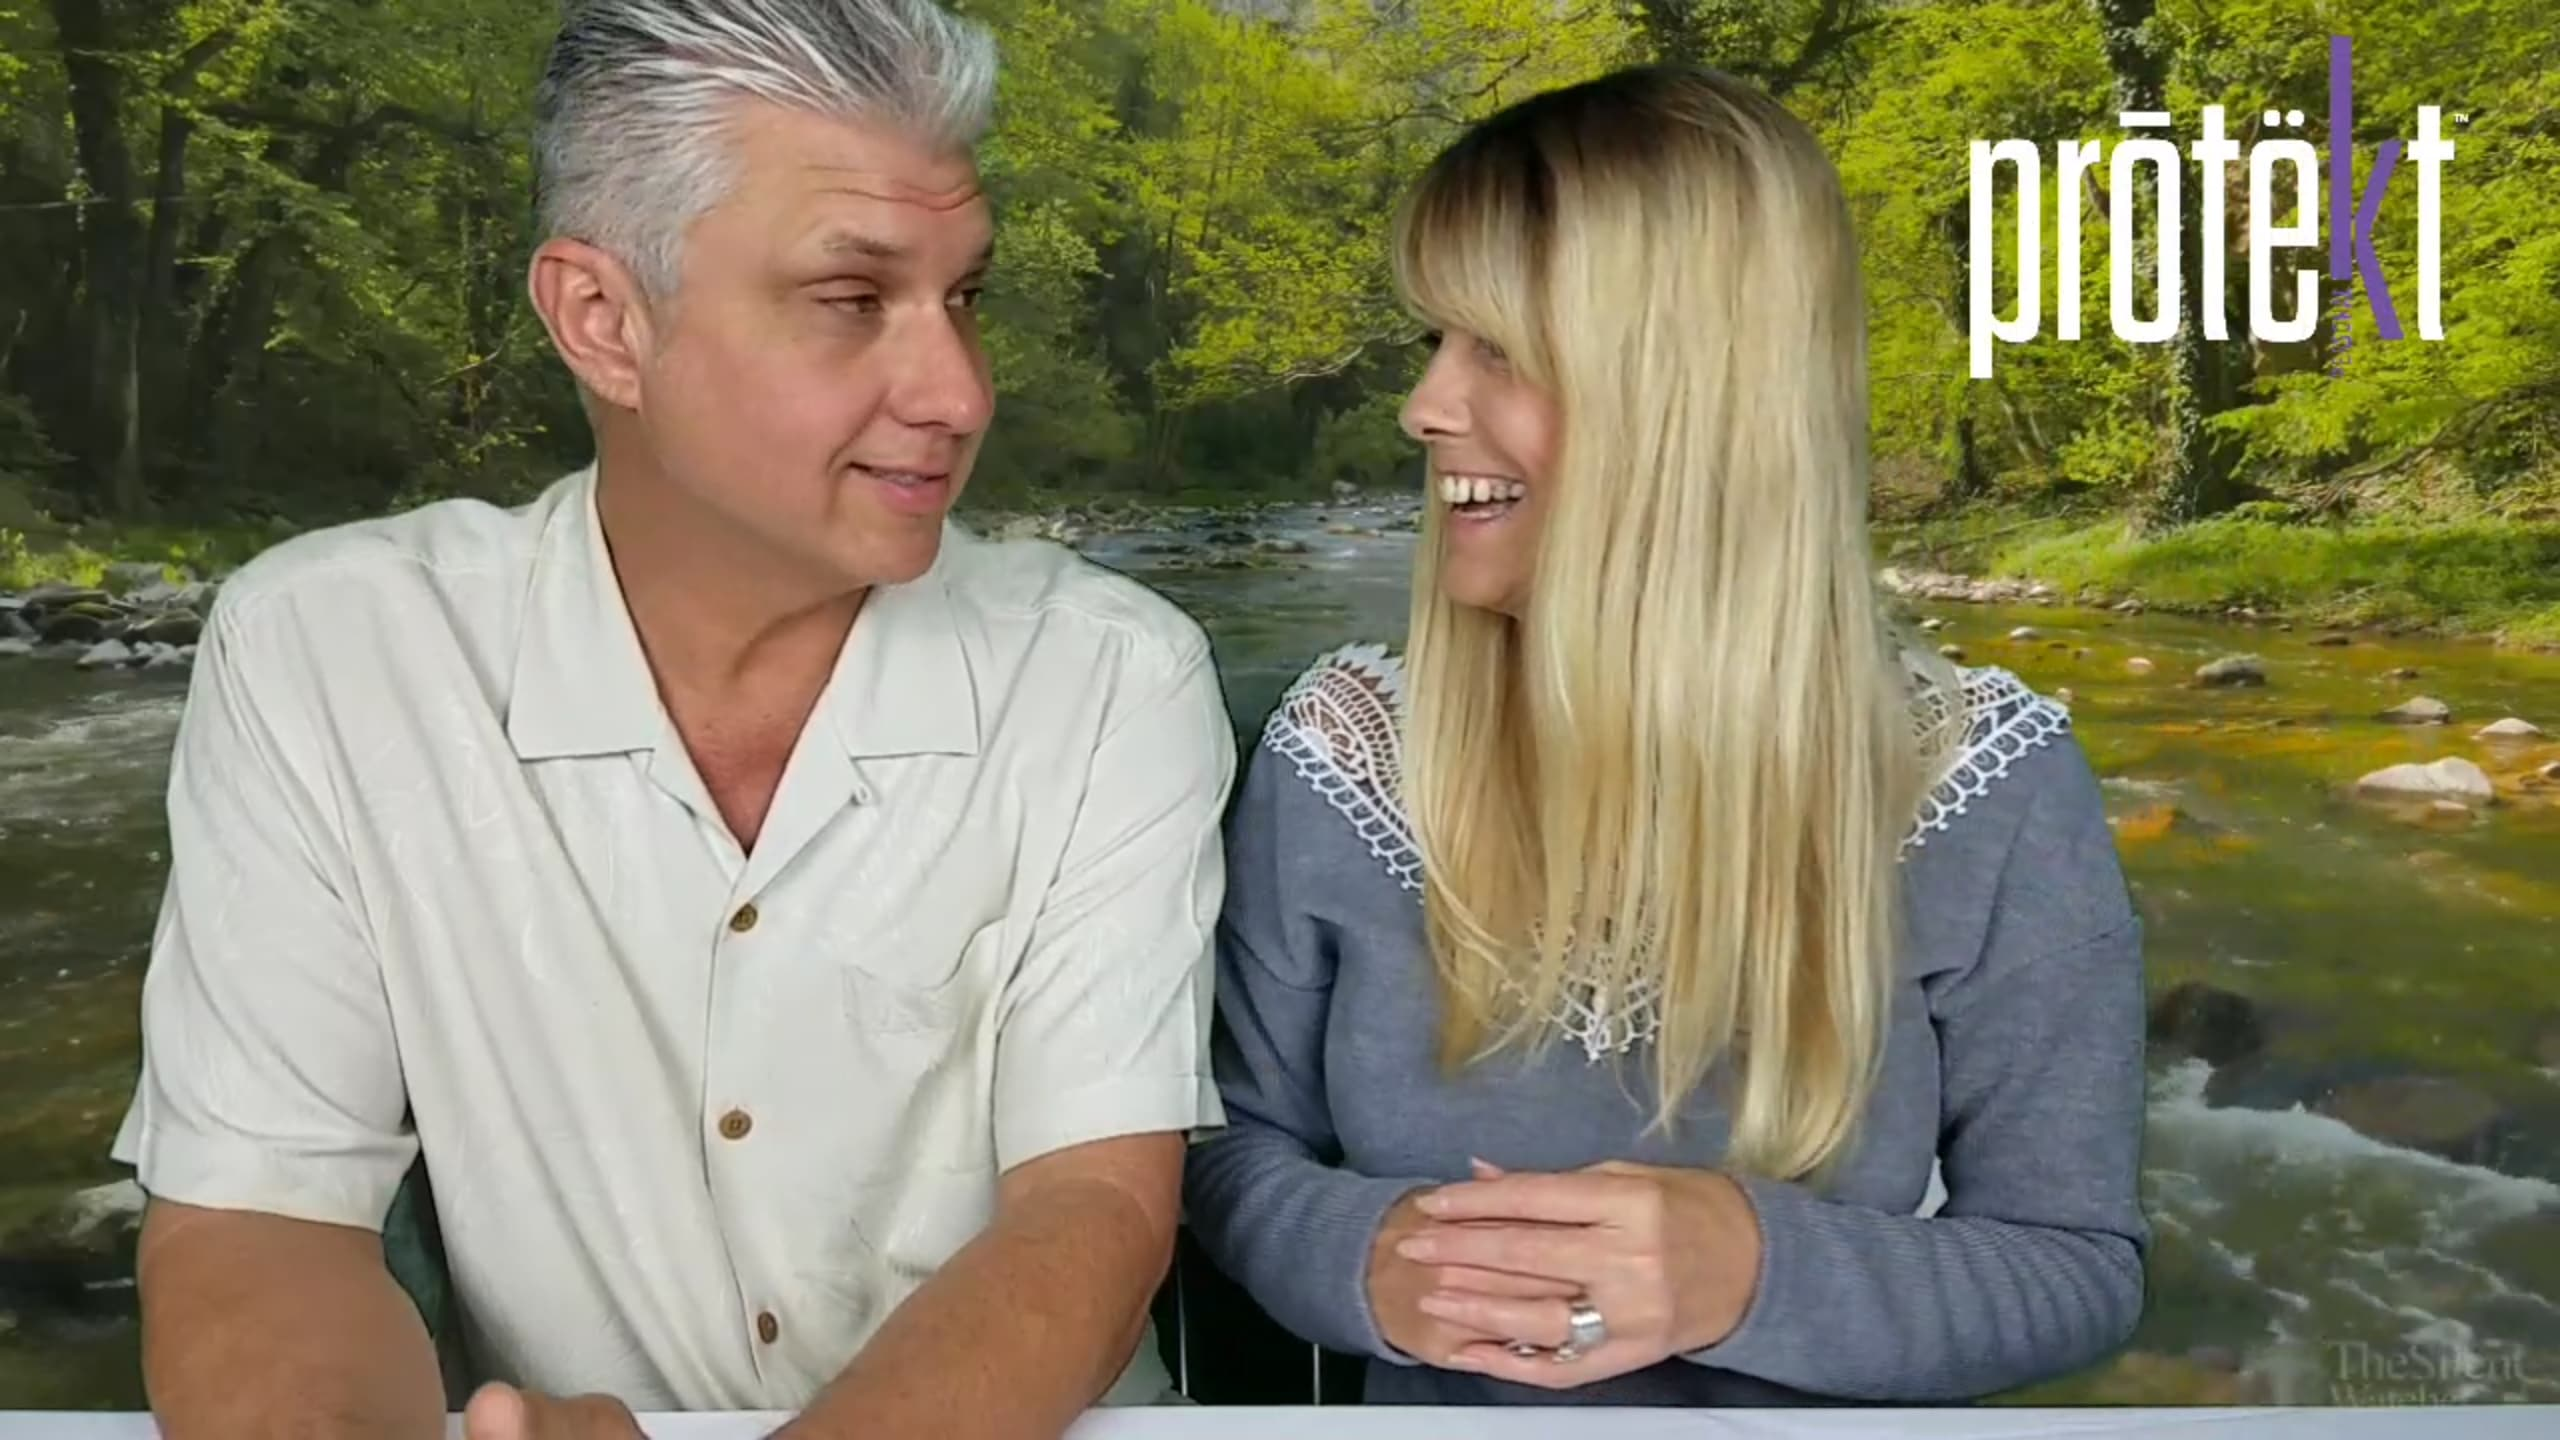 The hosts of the protekt probiotic video episode series